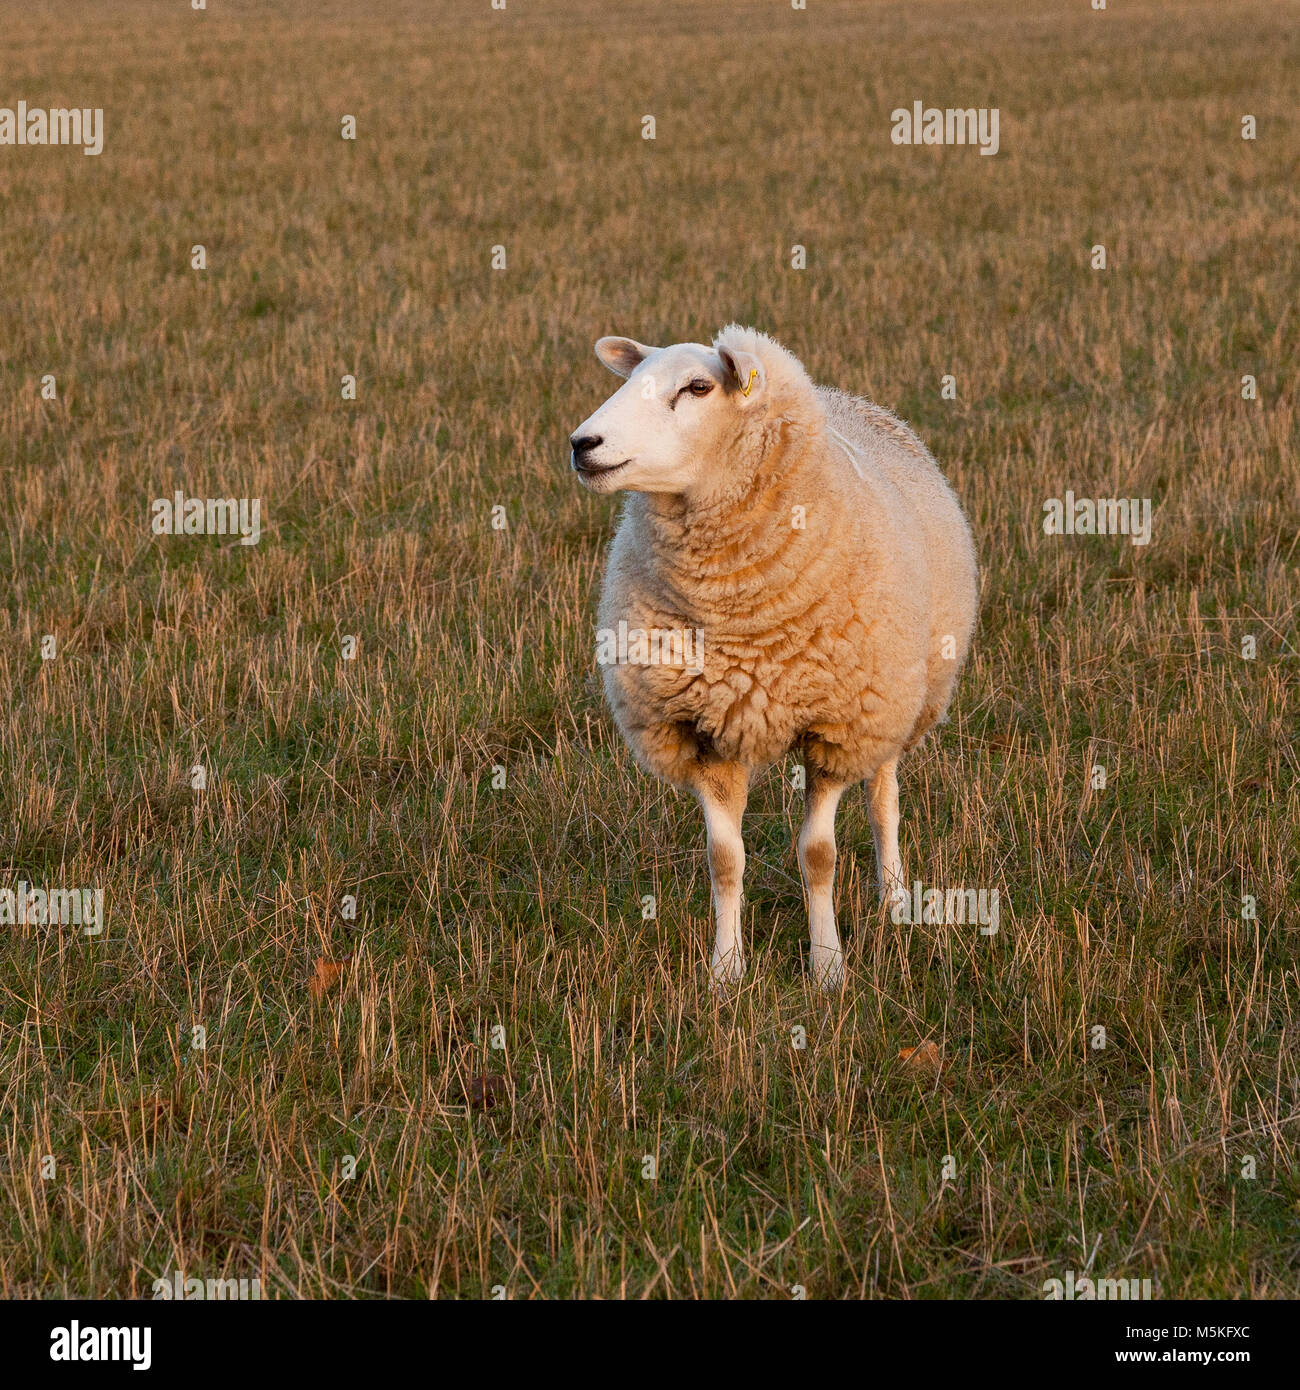 A white sheep standing in a grass field Stock Photo